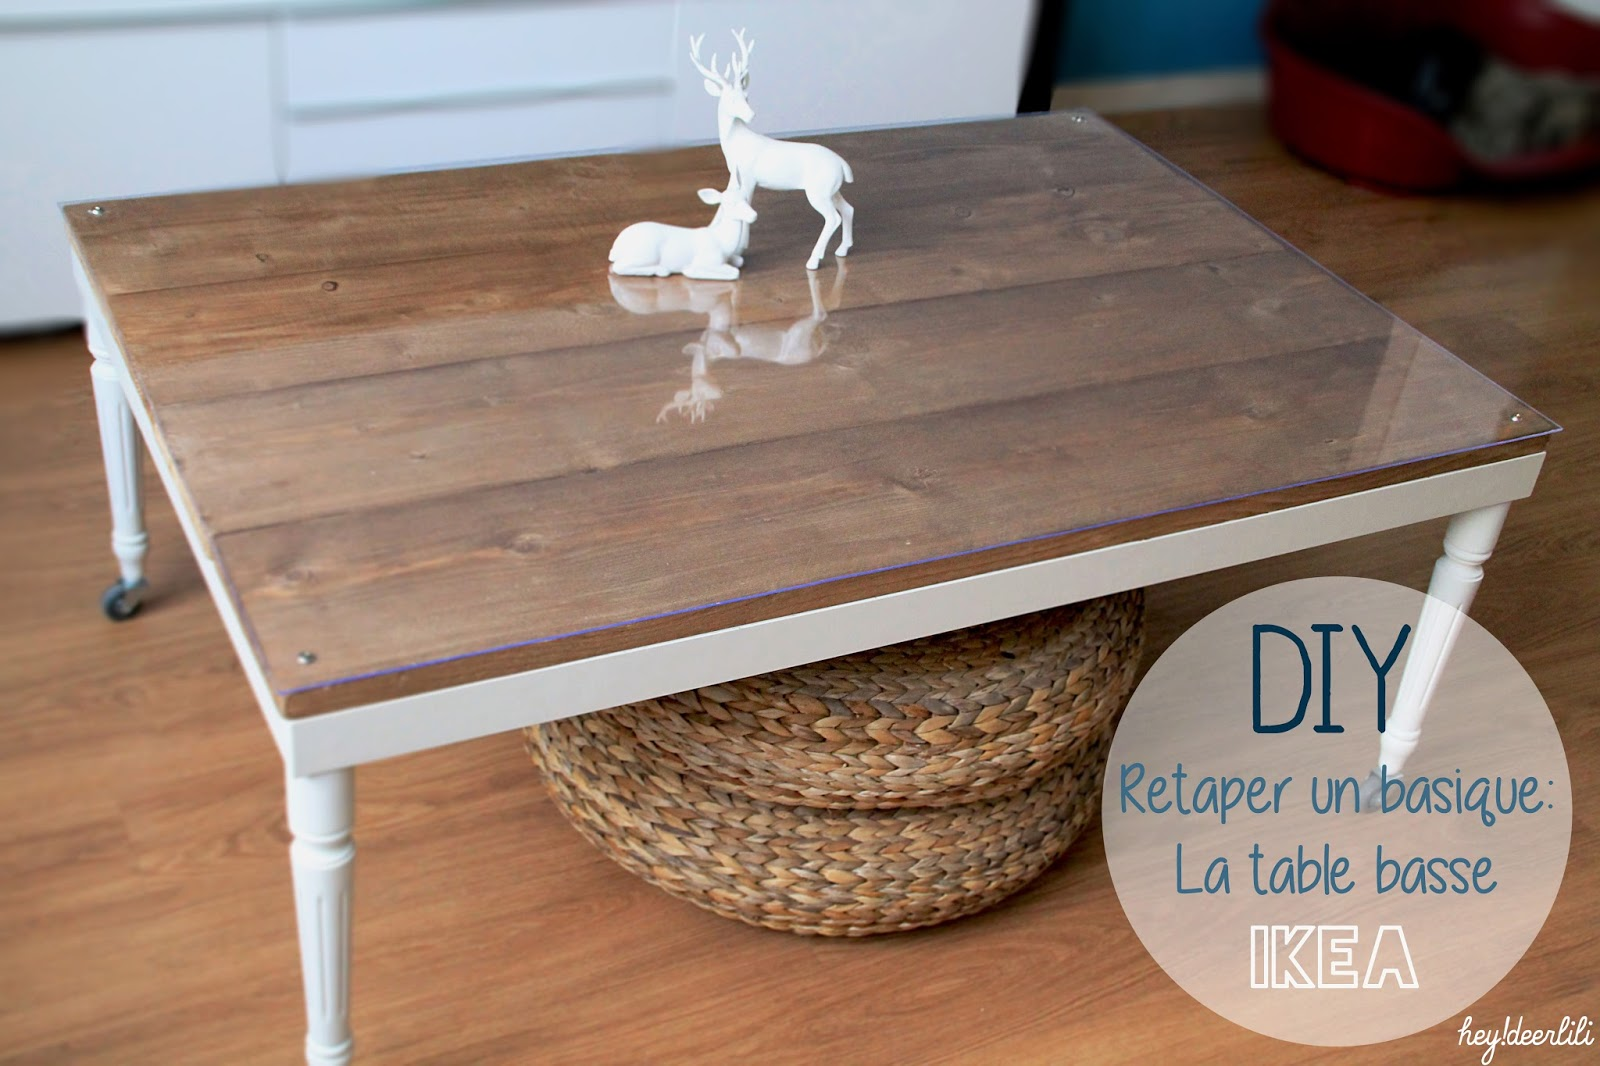 Retaper Une Table Basse Hey Deer Lili Retaper Un Basique La Table Basse Ikea